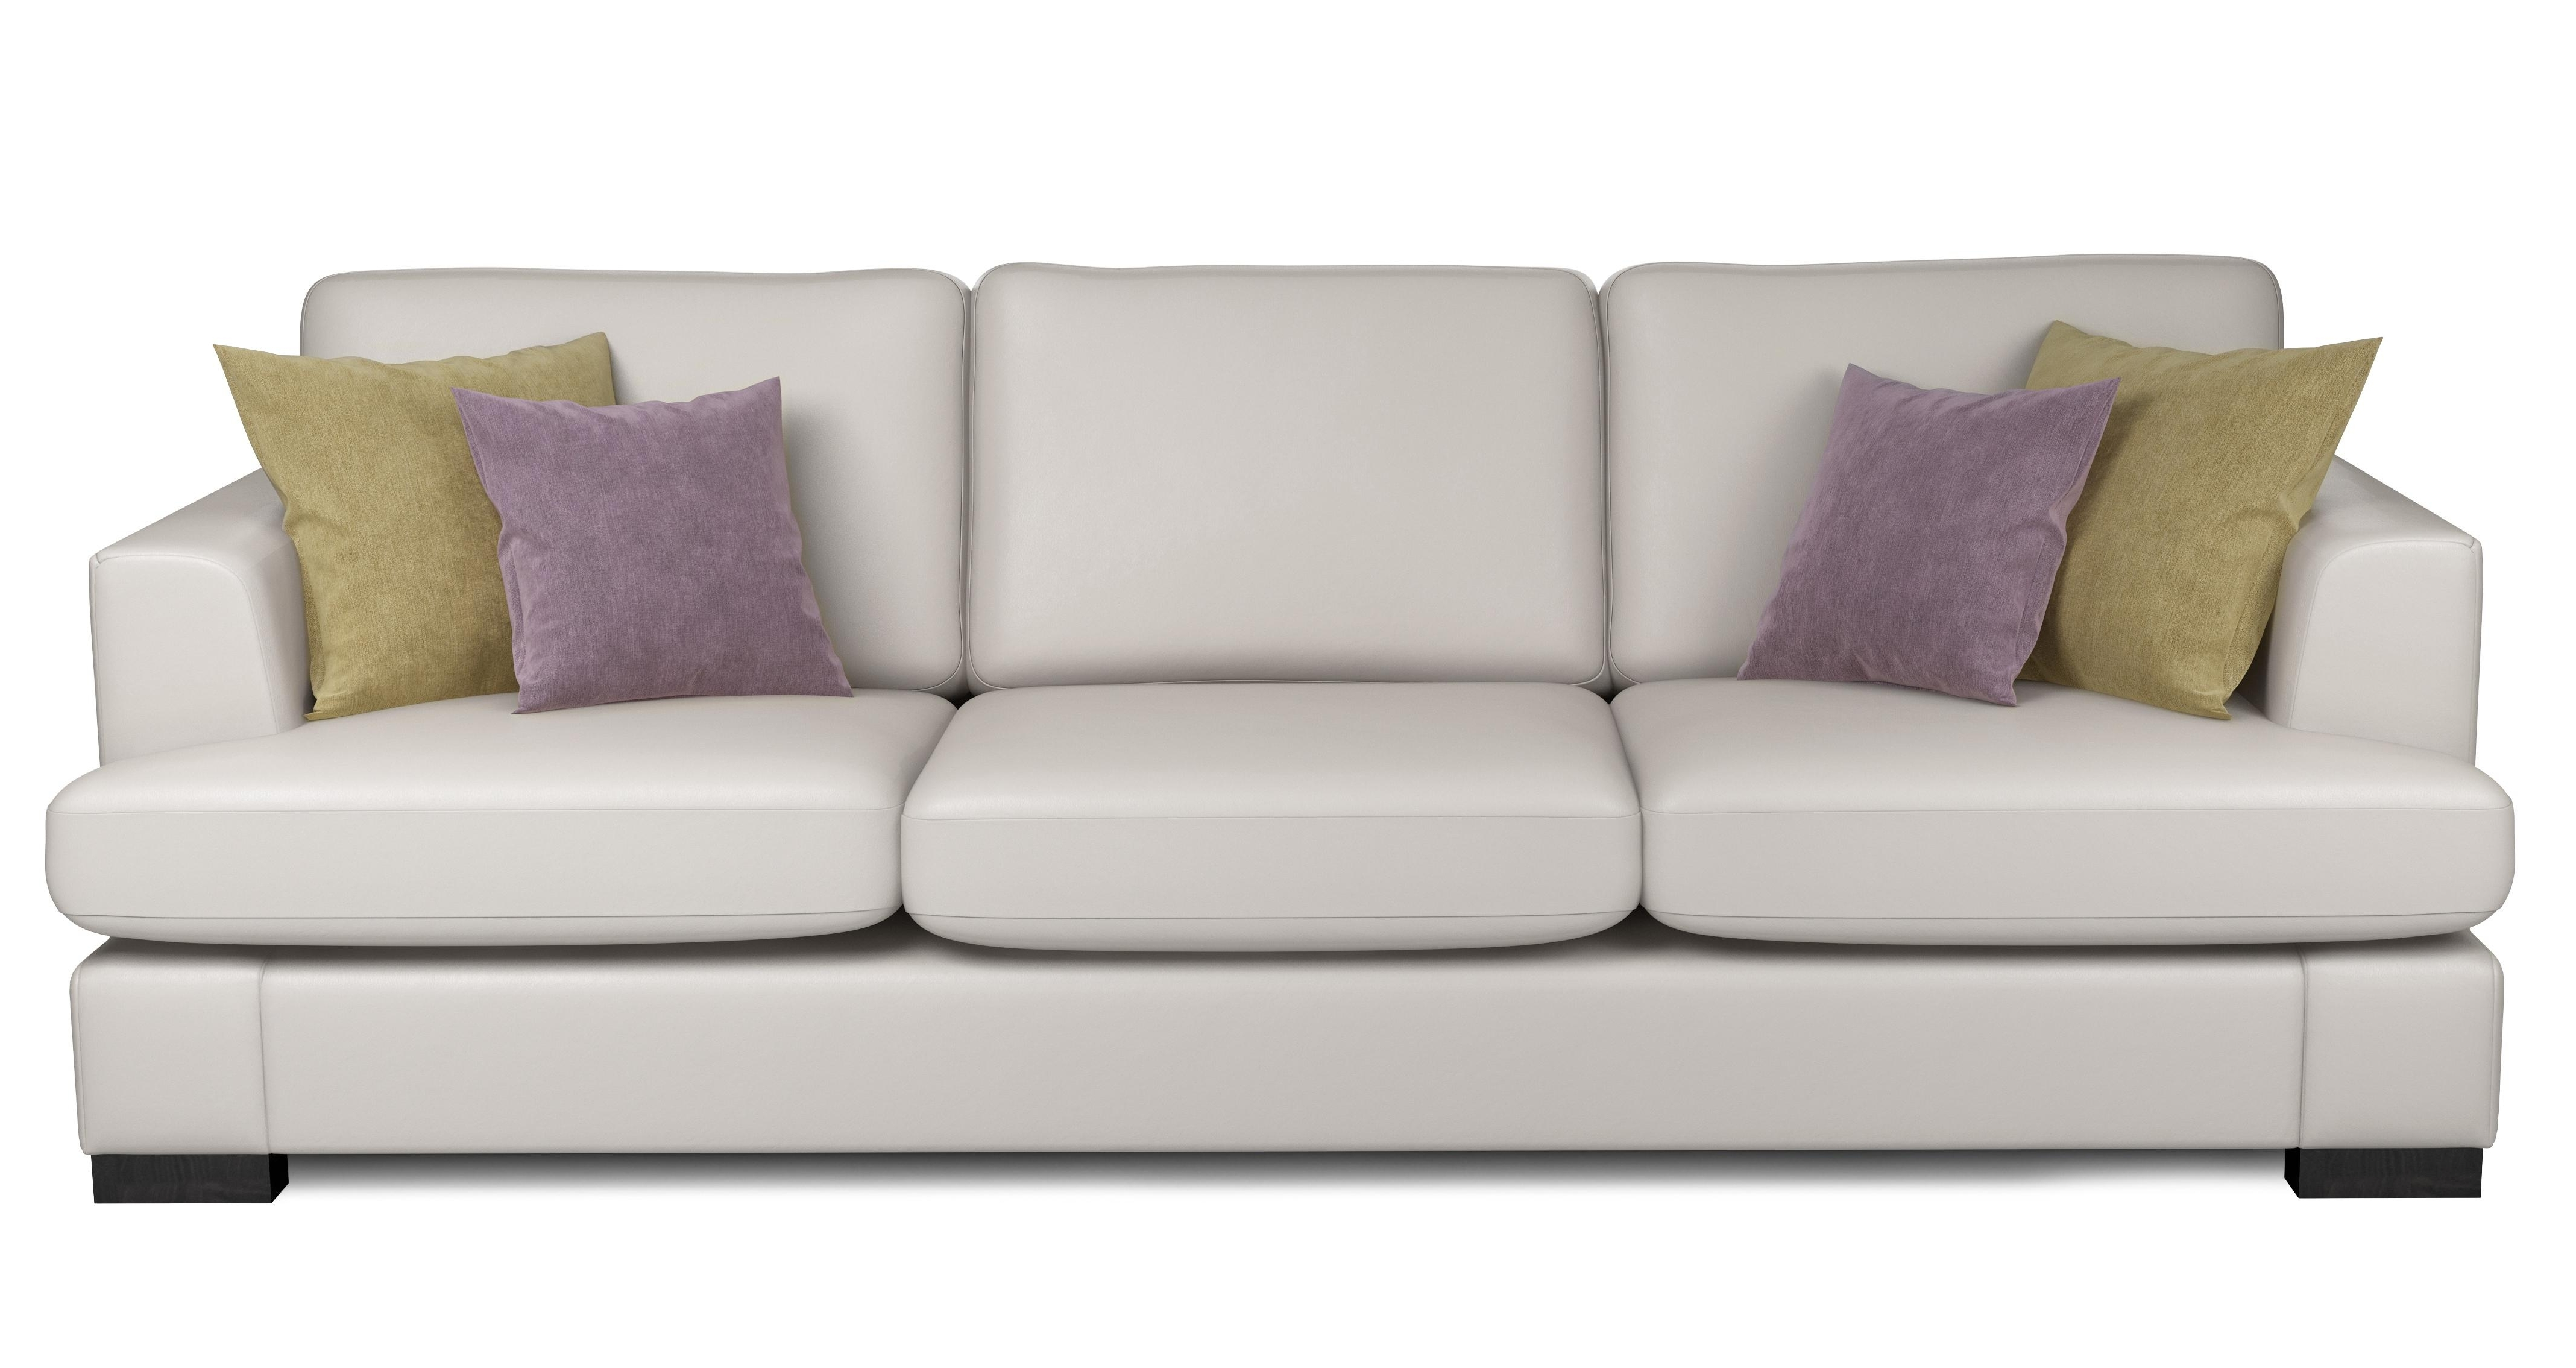 Widely Used 4 Seater Sofas Pertaining To 4 Seater Leather Sofa – Home And Textiles (View 4 of 20)